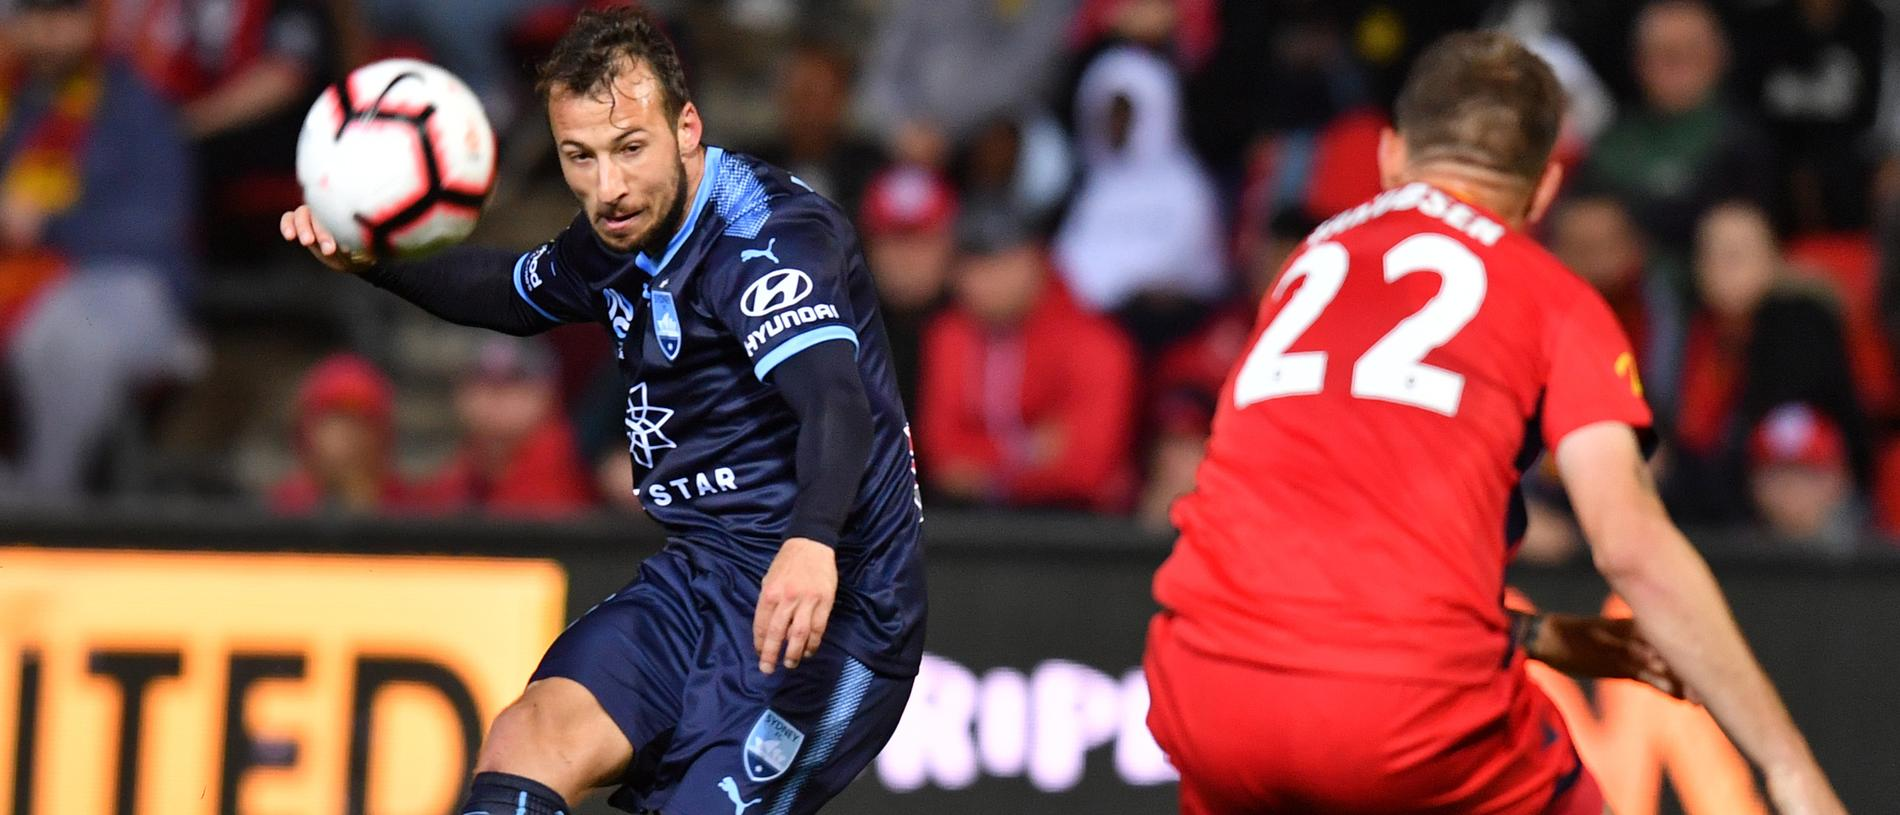 Adam Le Fondre of Sydney FC kicks towards the goal but misses during the Round 1 A-League match between Adelaide United and Sydney FC at Coopers Stadium in Adelaide, Friday, October 19, 2018. (AAP Image/Sam Wundke) NO ARCHIVING, EDITORIAL USE ONLY